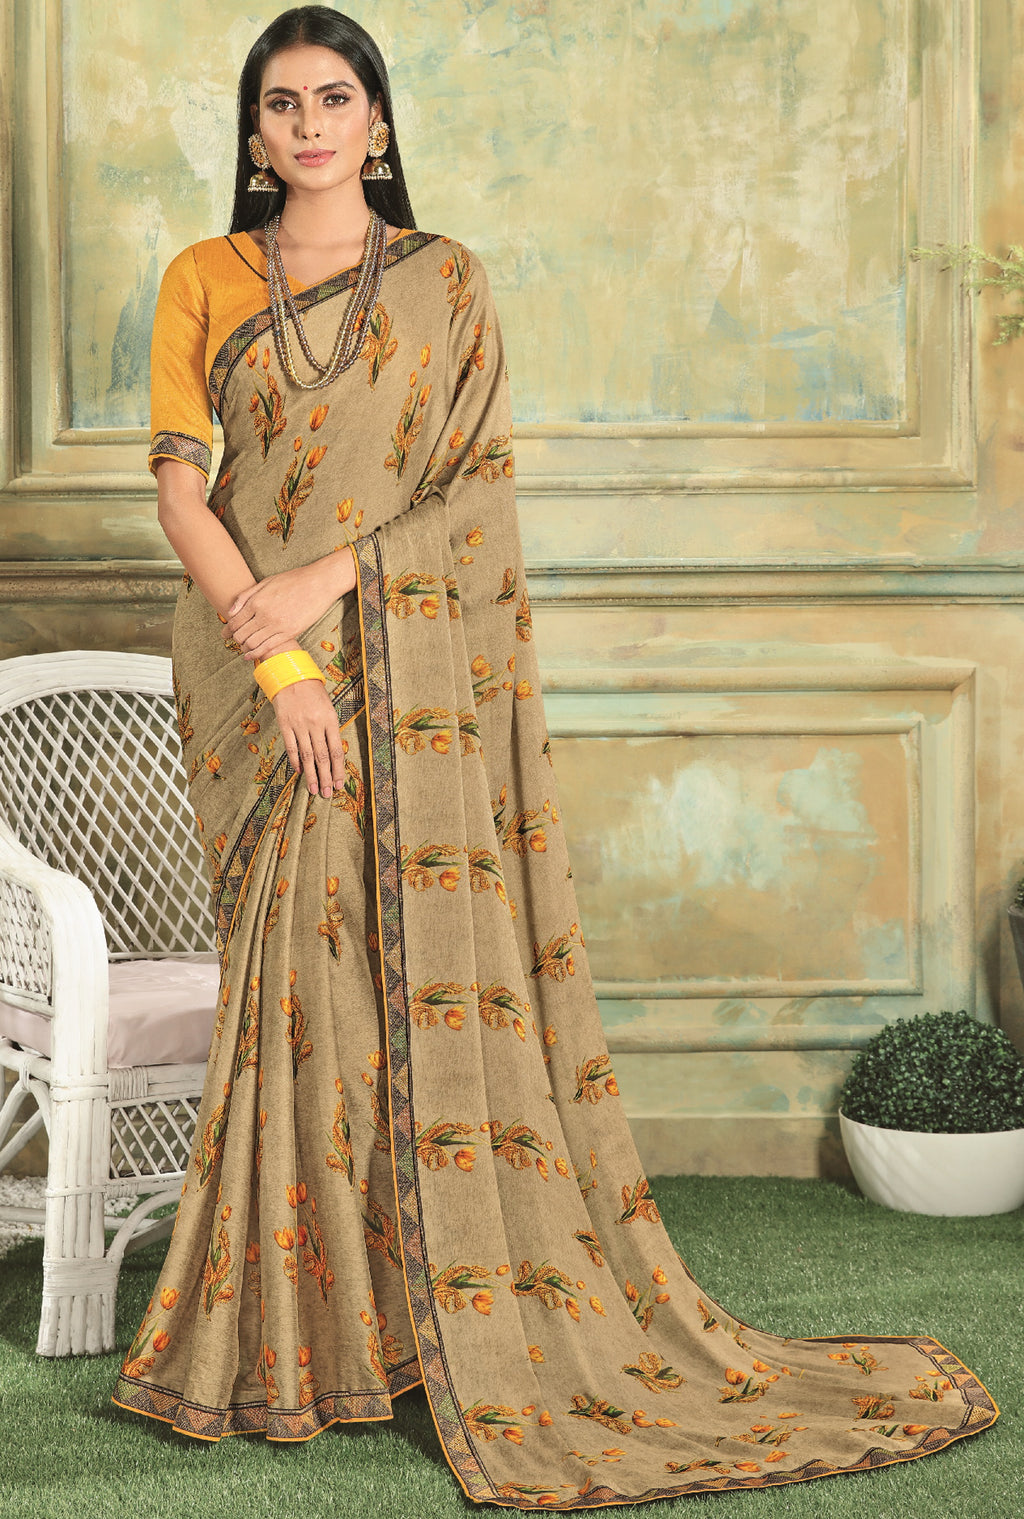 Beige Color Georgette Youthful Kitty Party Sarees NYF-5679